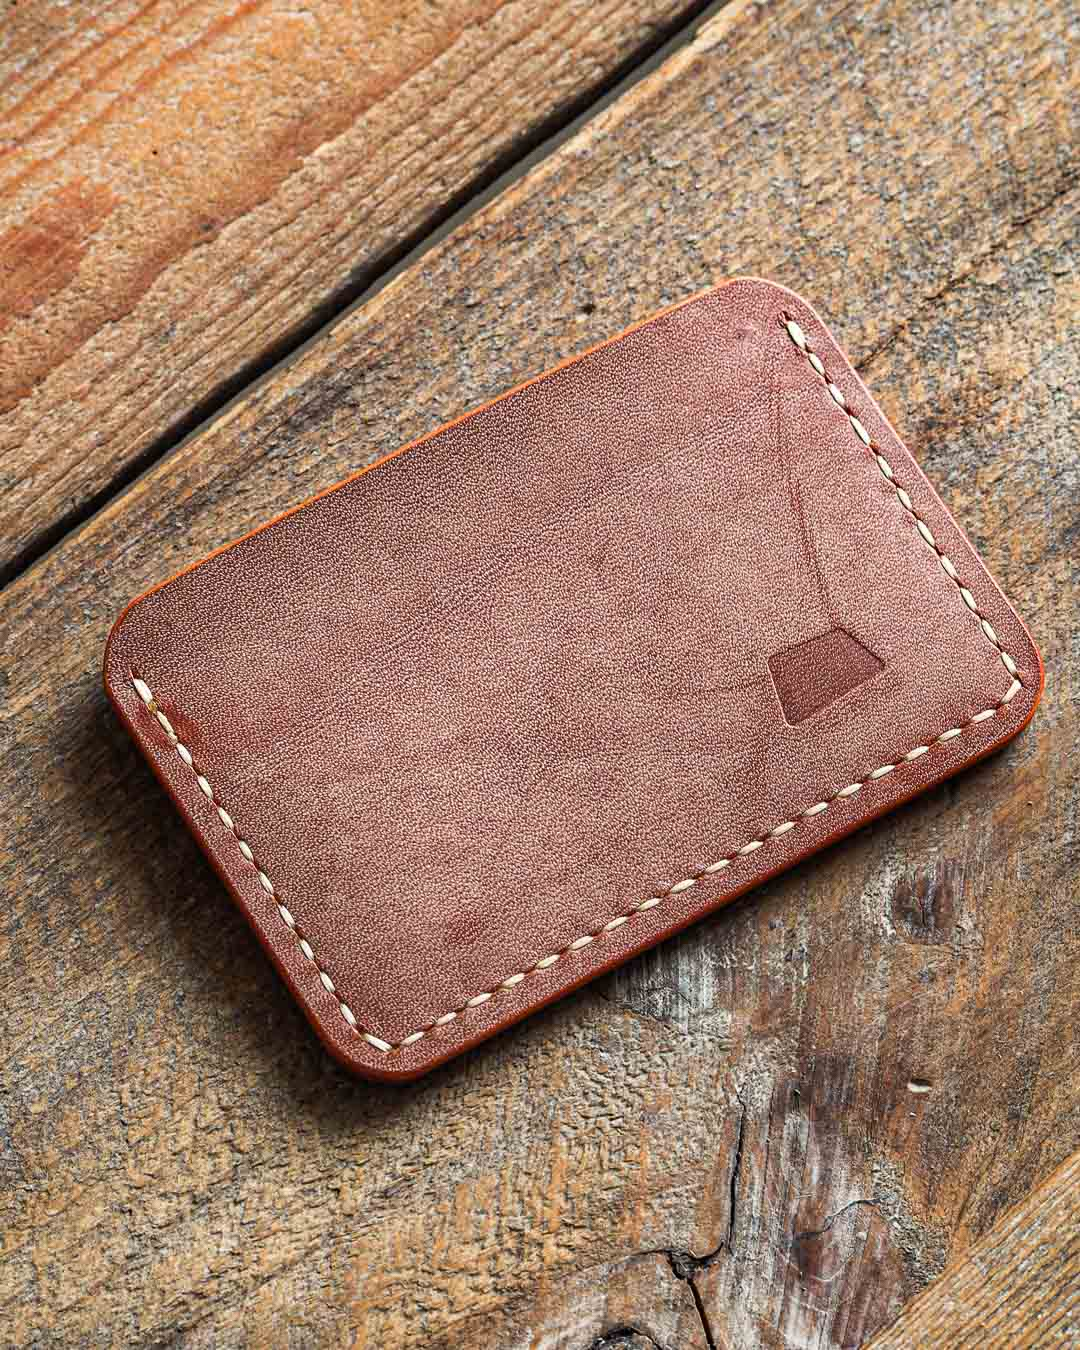 Luava handmade leather wallet handcrafted card holder cardholder made in finland proper ghost whiskey back